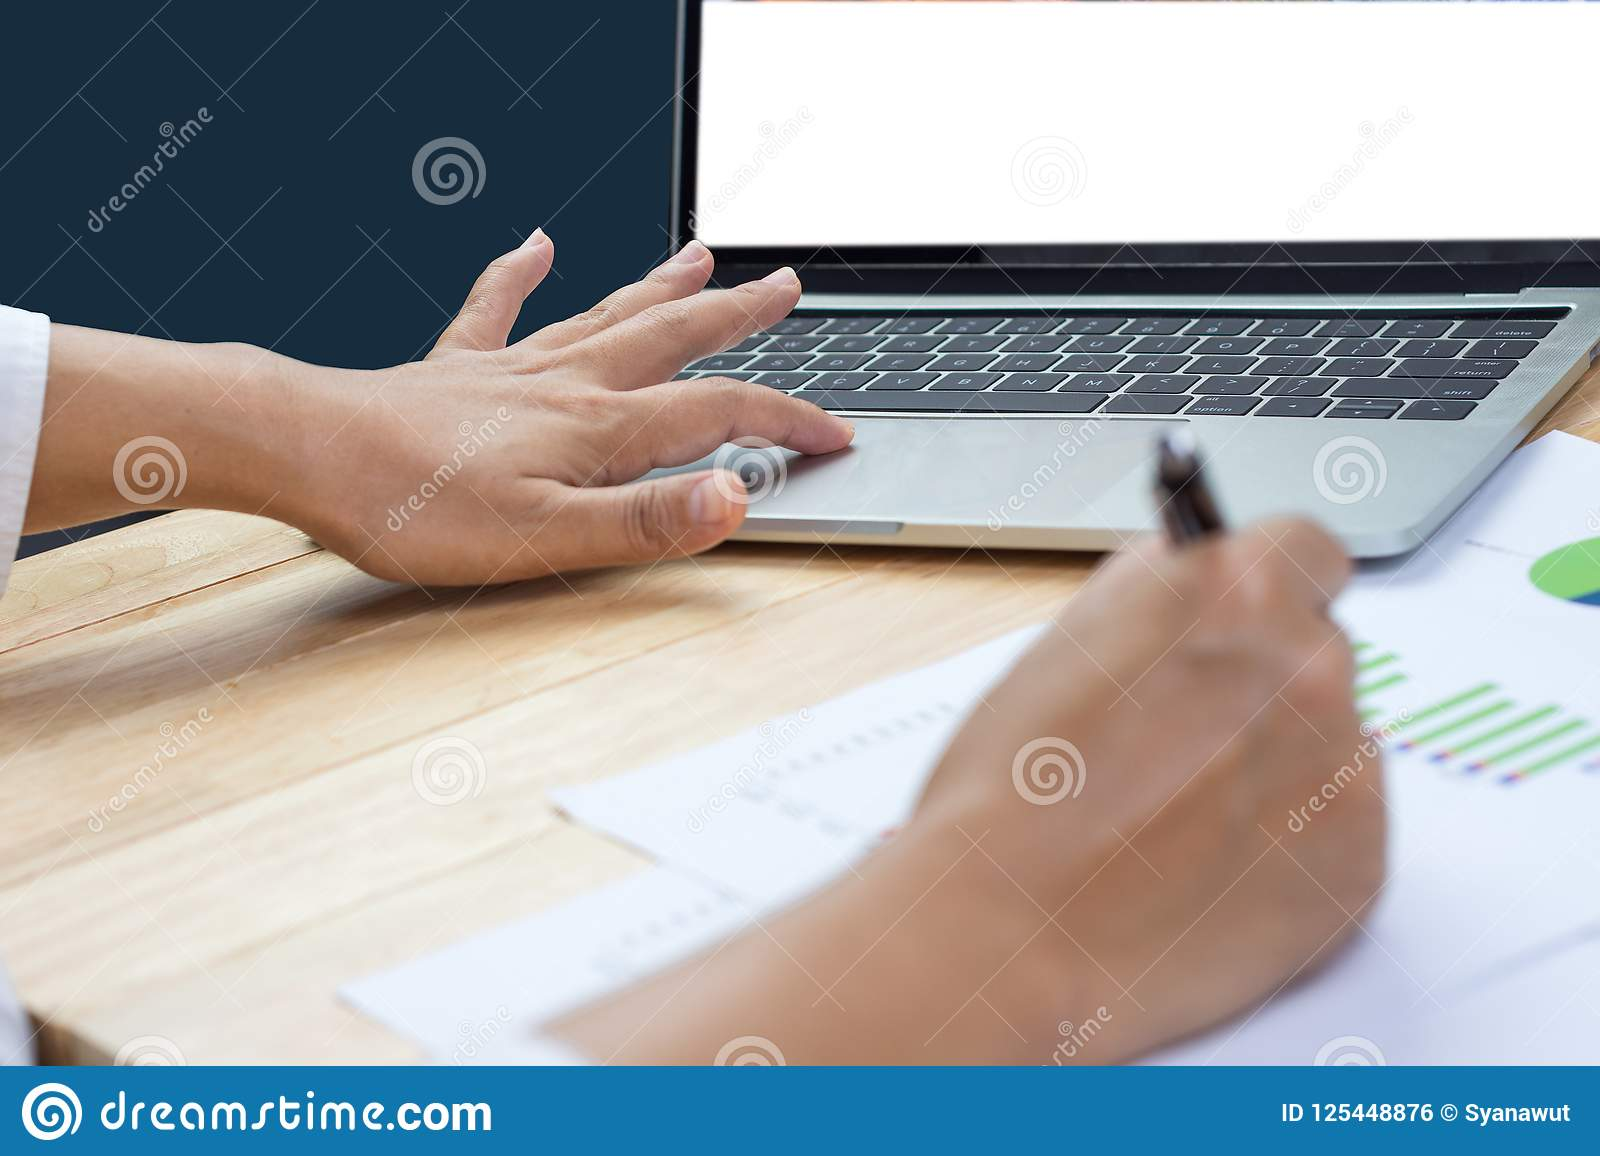 Business woman holding pen in hand working with financial paper charts and laptop computer